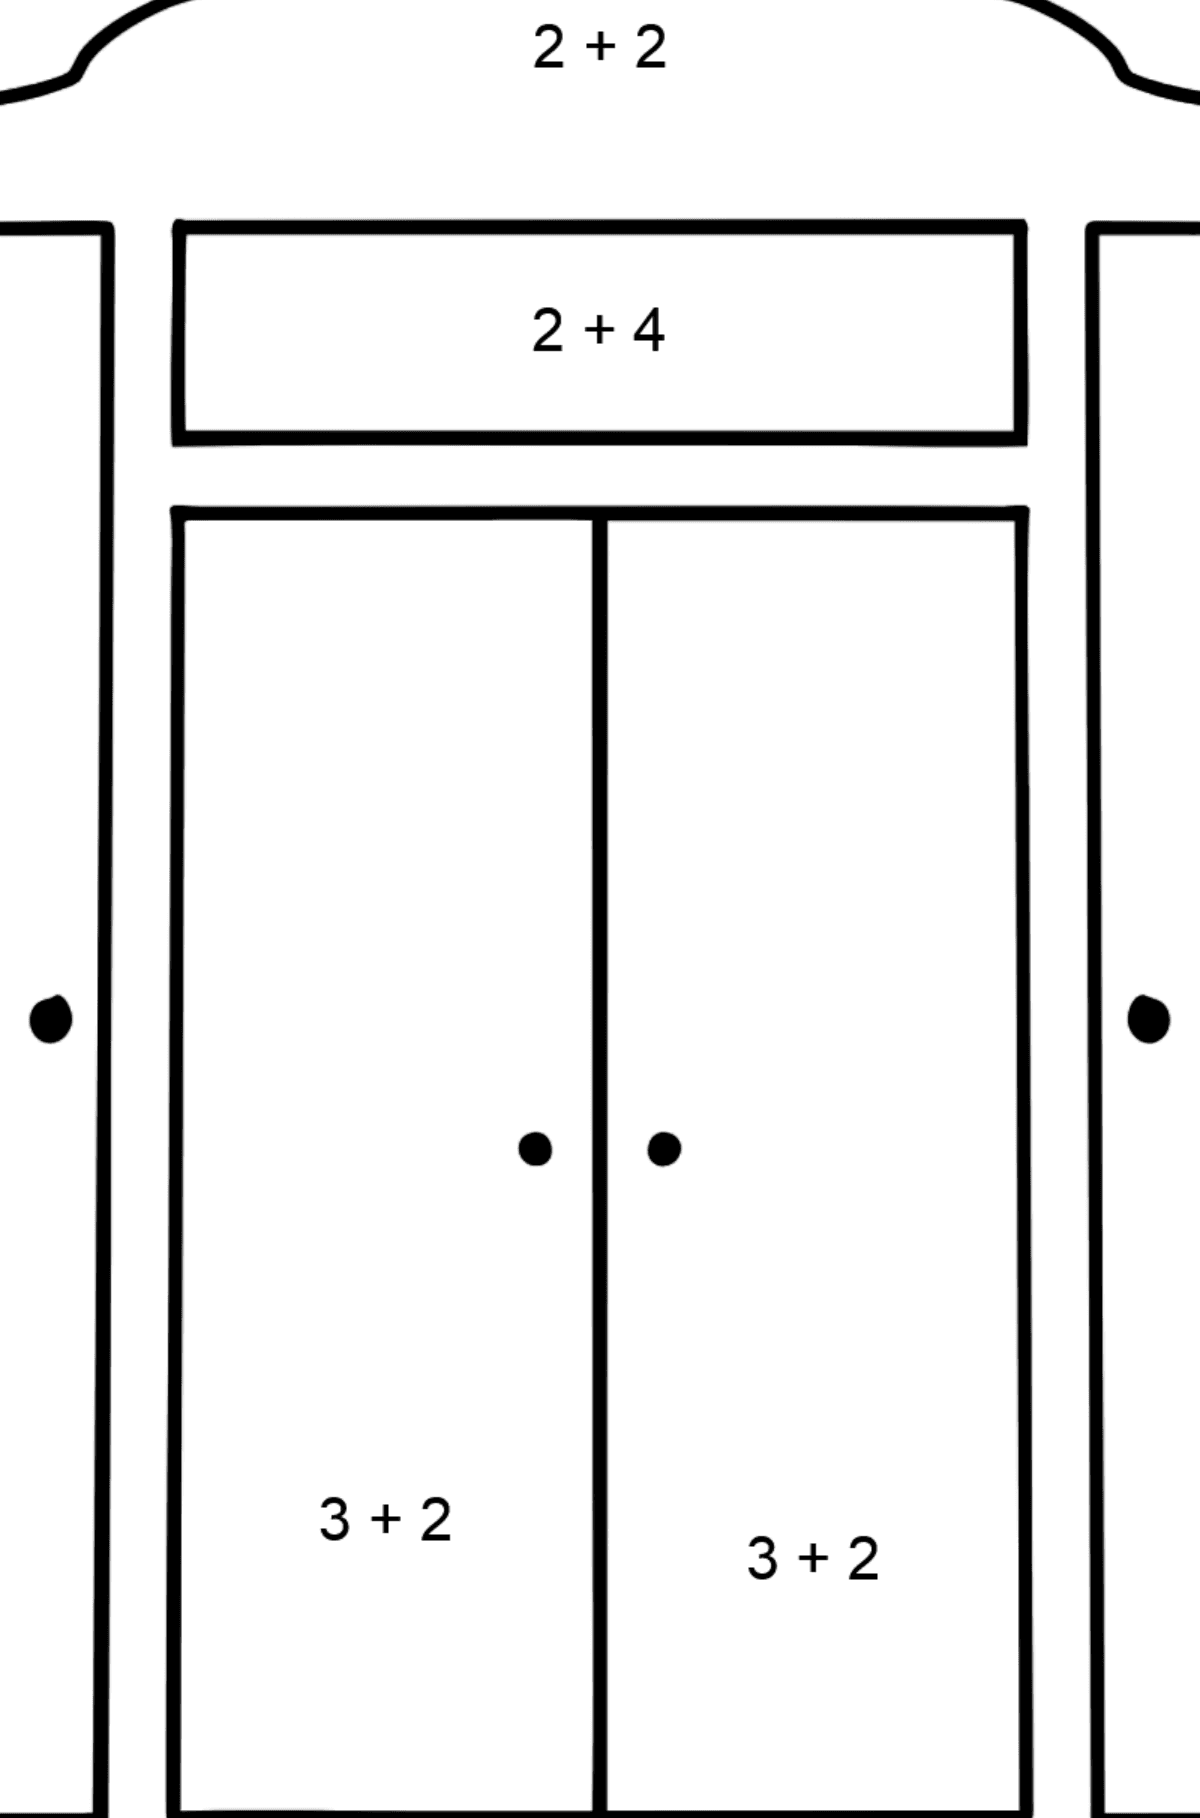 Wardrobe coloring page - Math Coloring - Addition for Kids